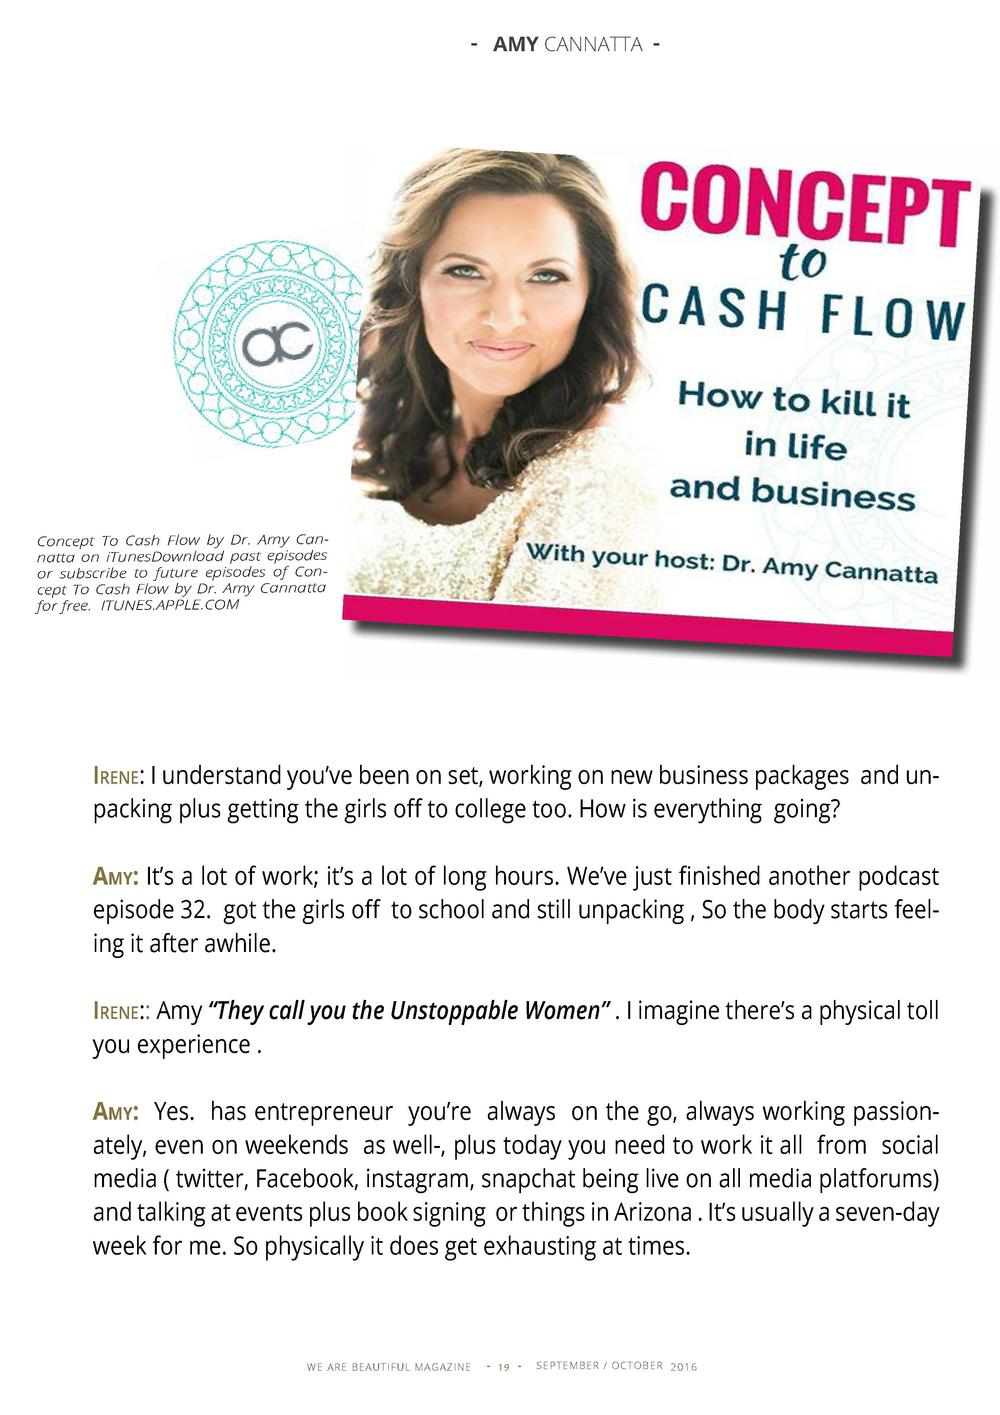 - AMY CANNATTA -  Concept To Cash Flow by Dr. Amy Cannatta on iTunesDownload past episodes or subscribe to future episodes...